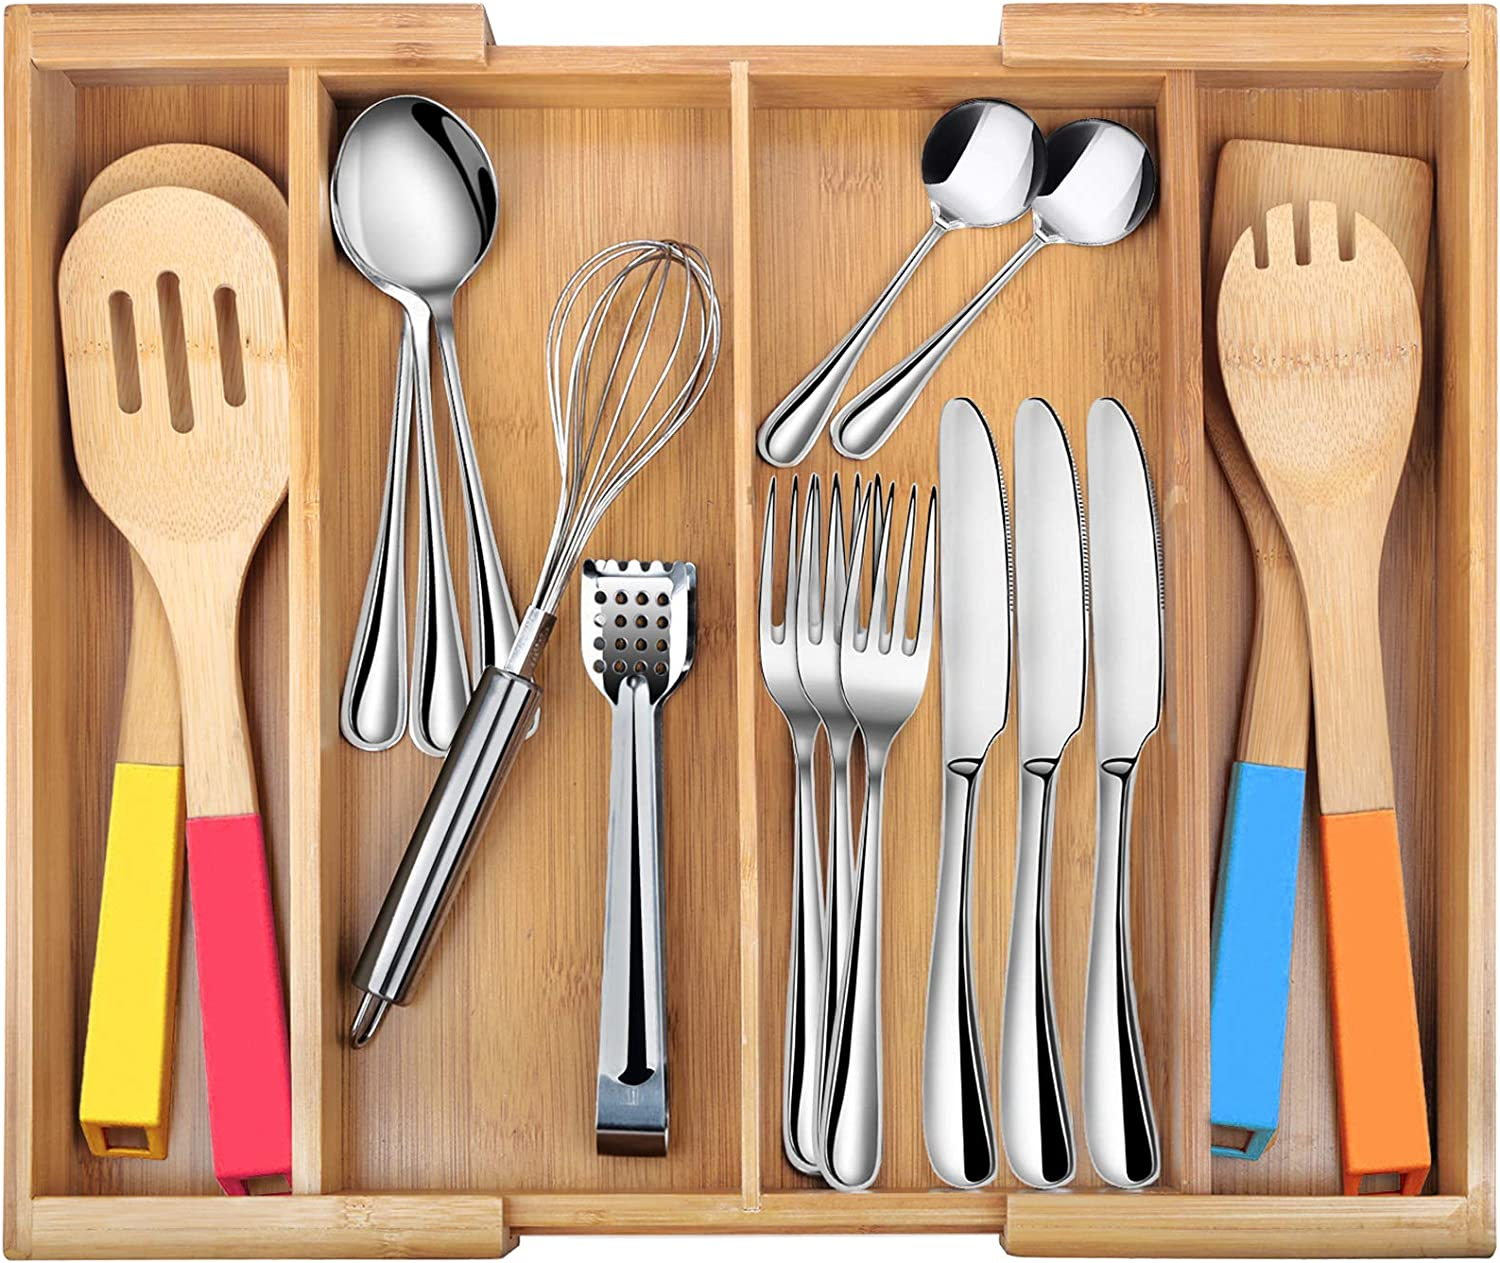 Silverware Drawer Tray Organizer Kitchen Storage Holder Flatware Cutlery Utensil